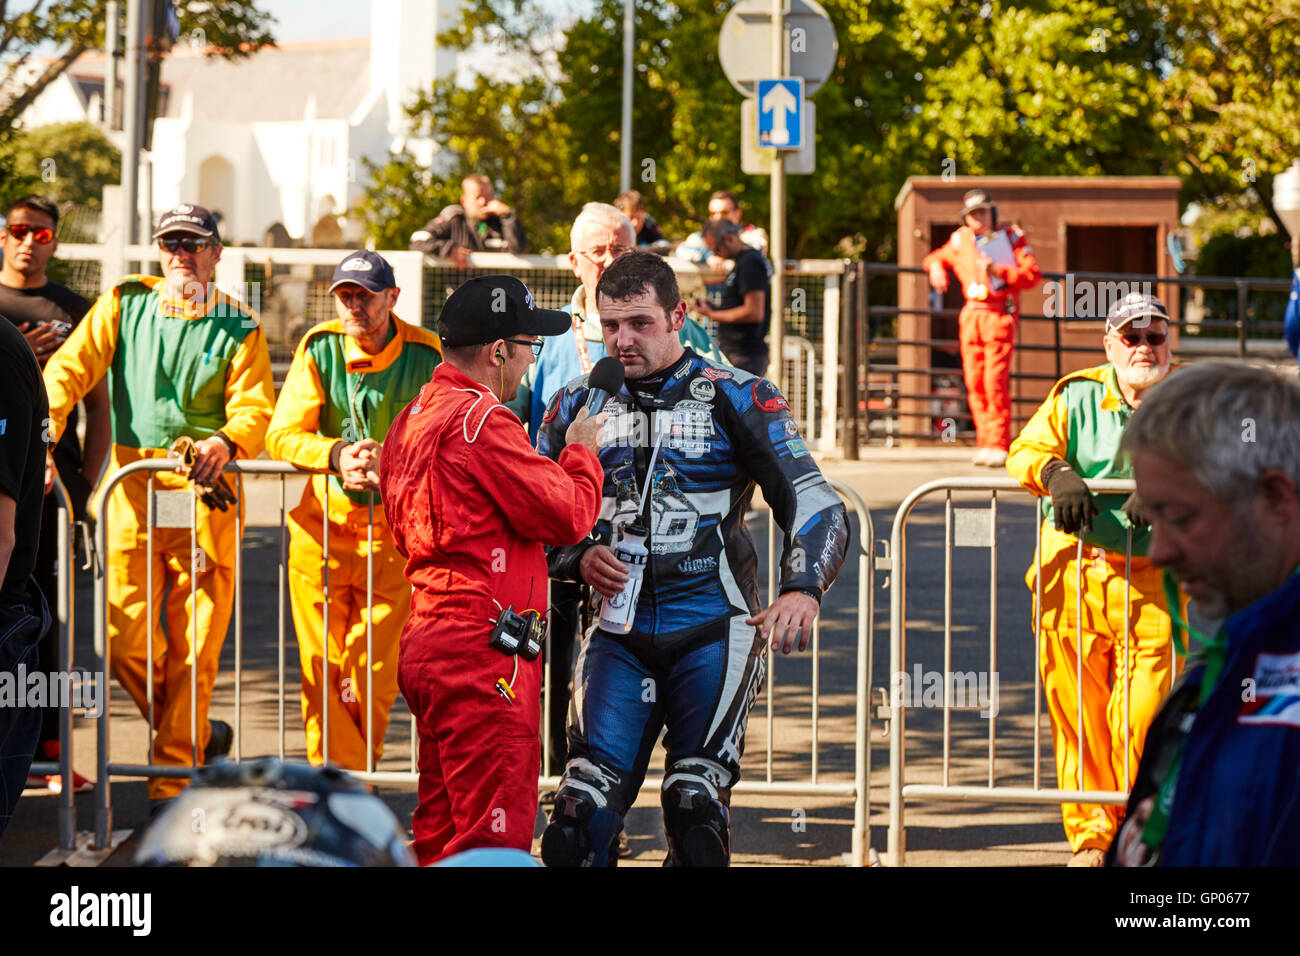 Michael Dunlop winner, in the TT classic superbike race at the Manx Festival of Motorcycling 2016 being interviewed Stock Photo